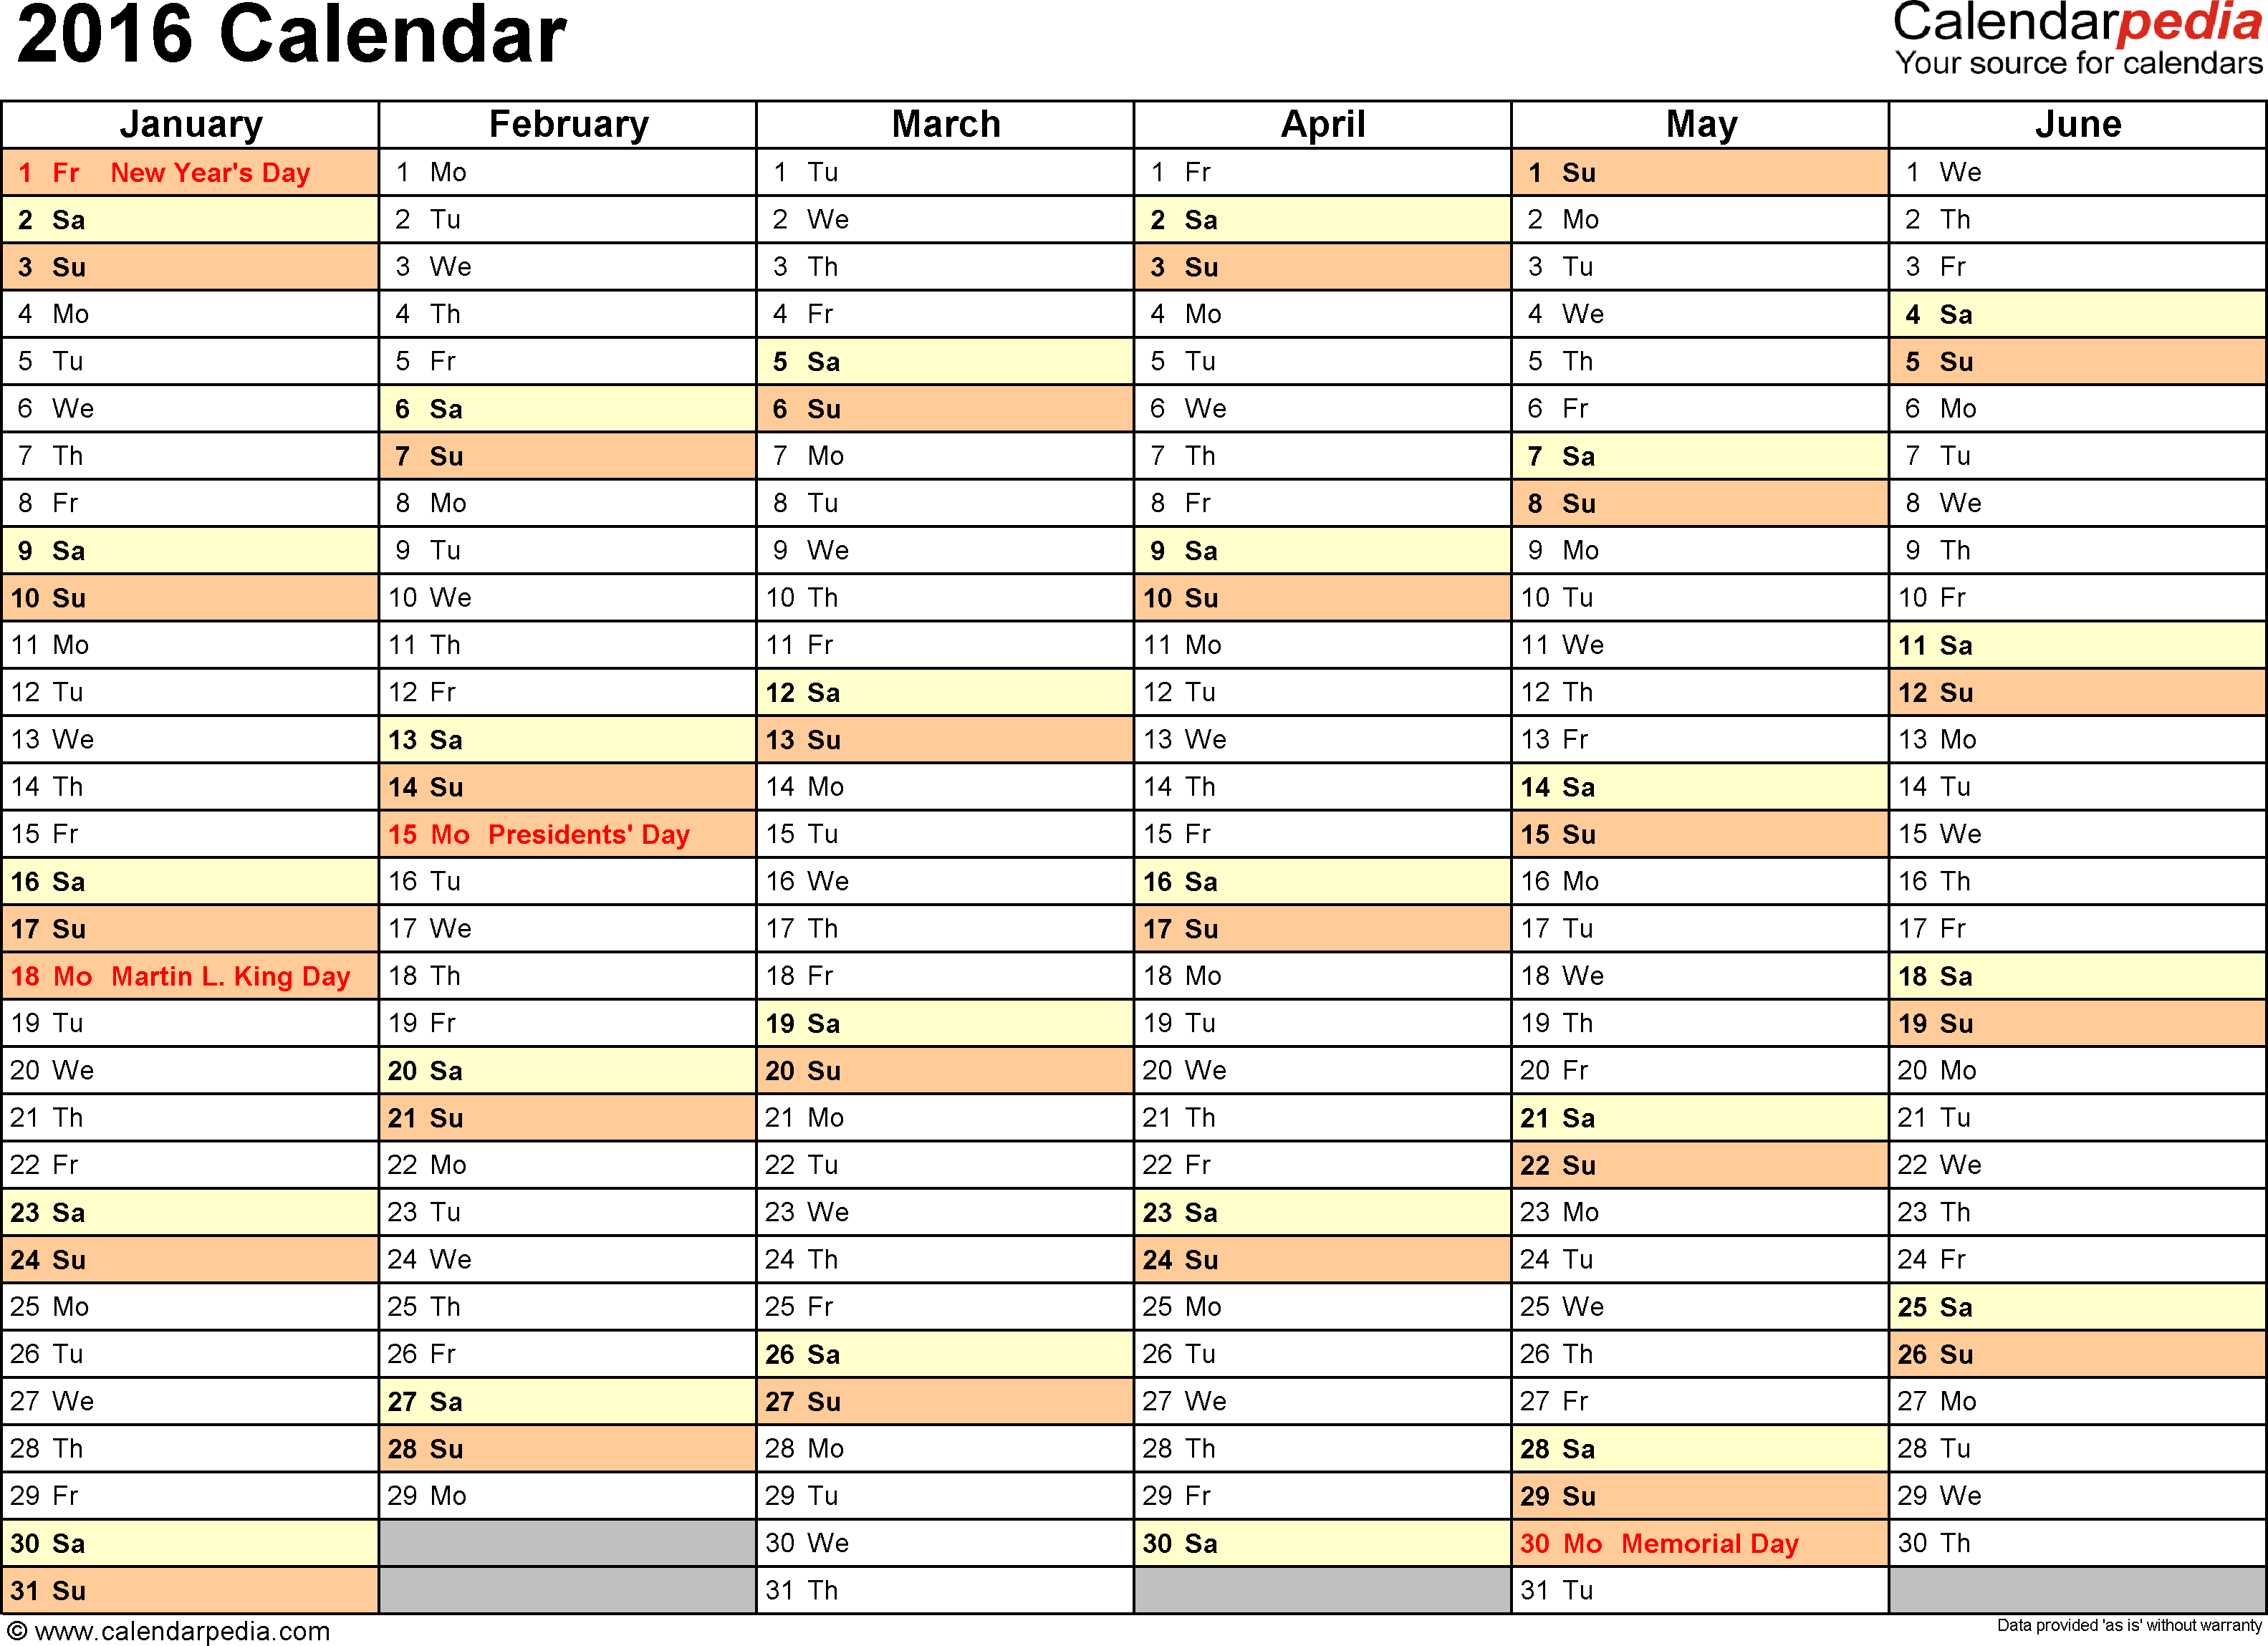 Ediblewildsus  Marvelous  Calendar  Download  Free Printable Excel Templates Xls With Foxy Template   Calendar For Excel Months Horizontally  Pages Landscape Orientation With Beautiful Free Download Of Excel Also Hidden Game In Excel In Addition Capacity Planning Tools Excel And Best Online Excel Course As Well As Making Excel Spreadsheet Additionally Import Excel To Outlook Contacts From Calendarpediacom With Ediblewildsus  Foxy  Calendar  Download  Free Printable Excel Templates Xls With Beautiful Template   Calendar For Excel Months Horizontally  Pages Landscape Orientation And Marvelous Free Download Of Excel Also Hidden Game In Excel In Addition Capacity Planning Tools Excel From Calendarpediacom